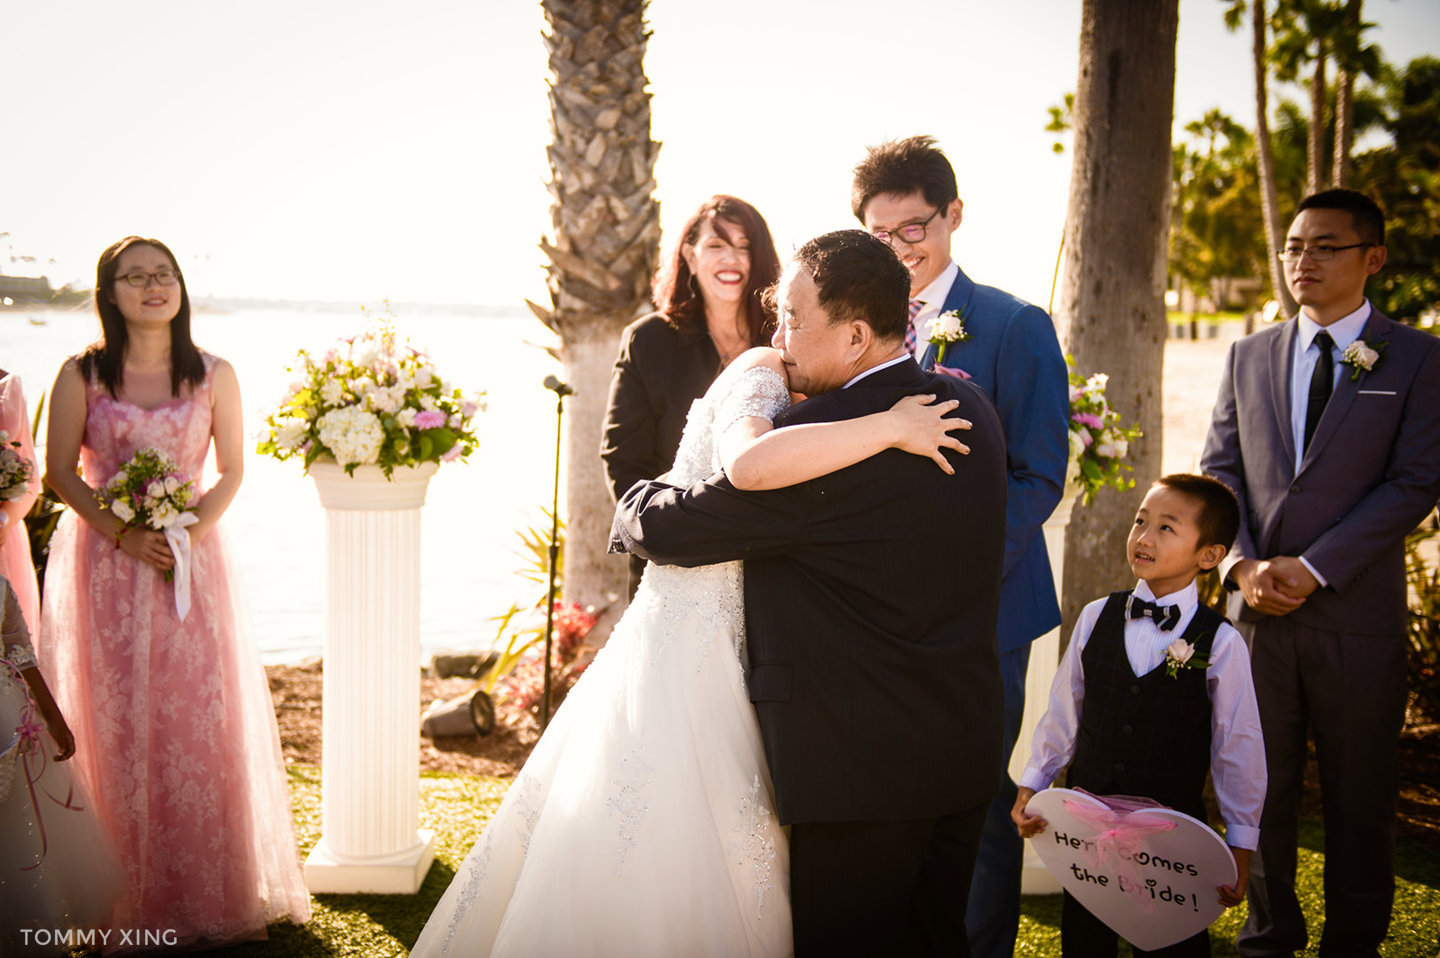 Paradise Point Resort Wedding Xiaolu & Bin San Diego 圣地亚哥婚礼摄影跟拍 Tommy Xing Photography 洛杉矶婚礼婚纱照摄影师 115.jpg